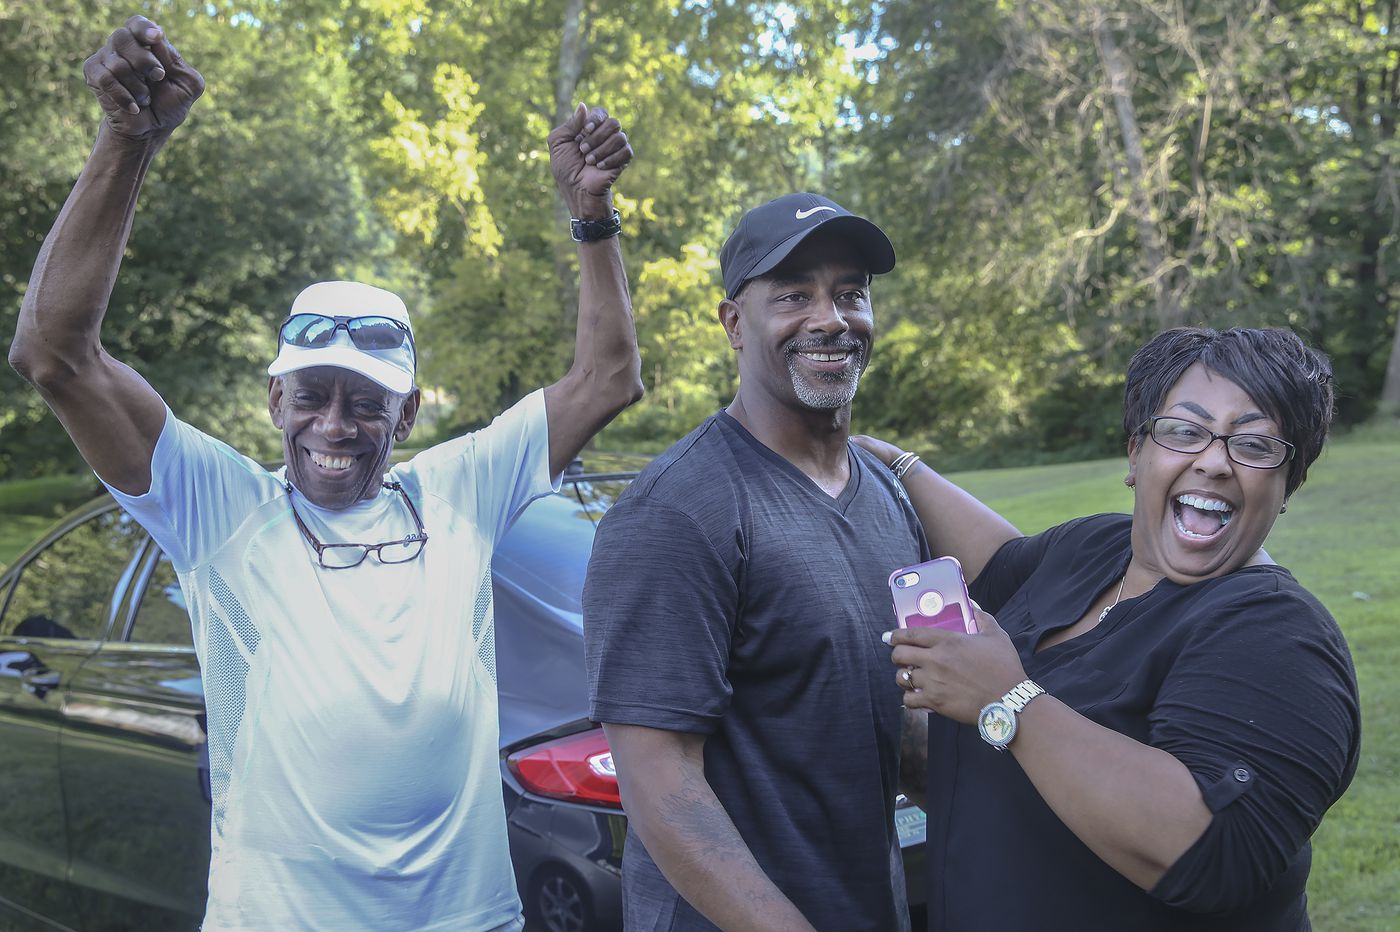 'It's surreal': After 28 years in prison, Philly man freed after prosecutors call him 'likely innocent' in 1991 murder